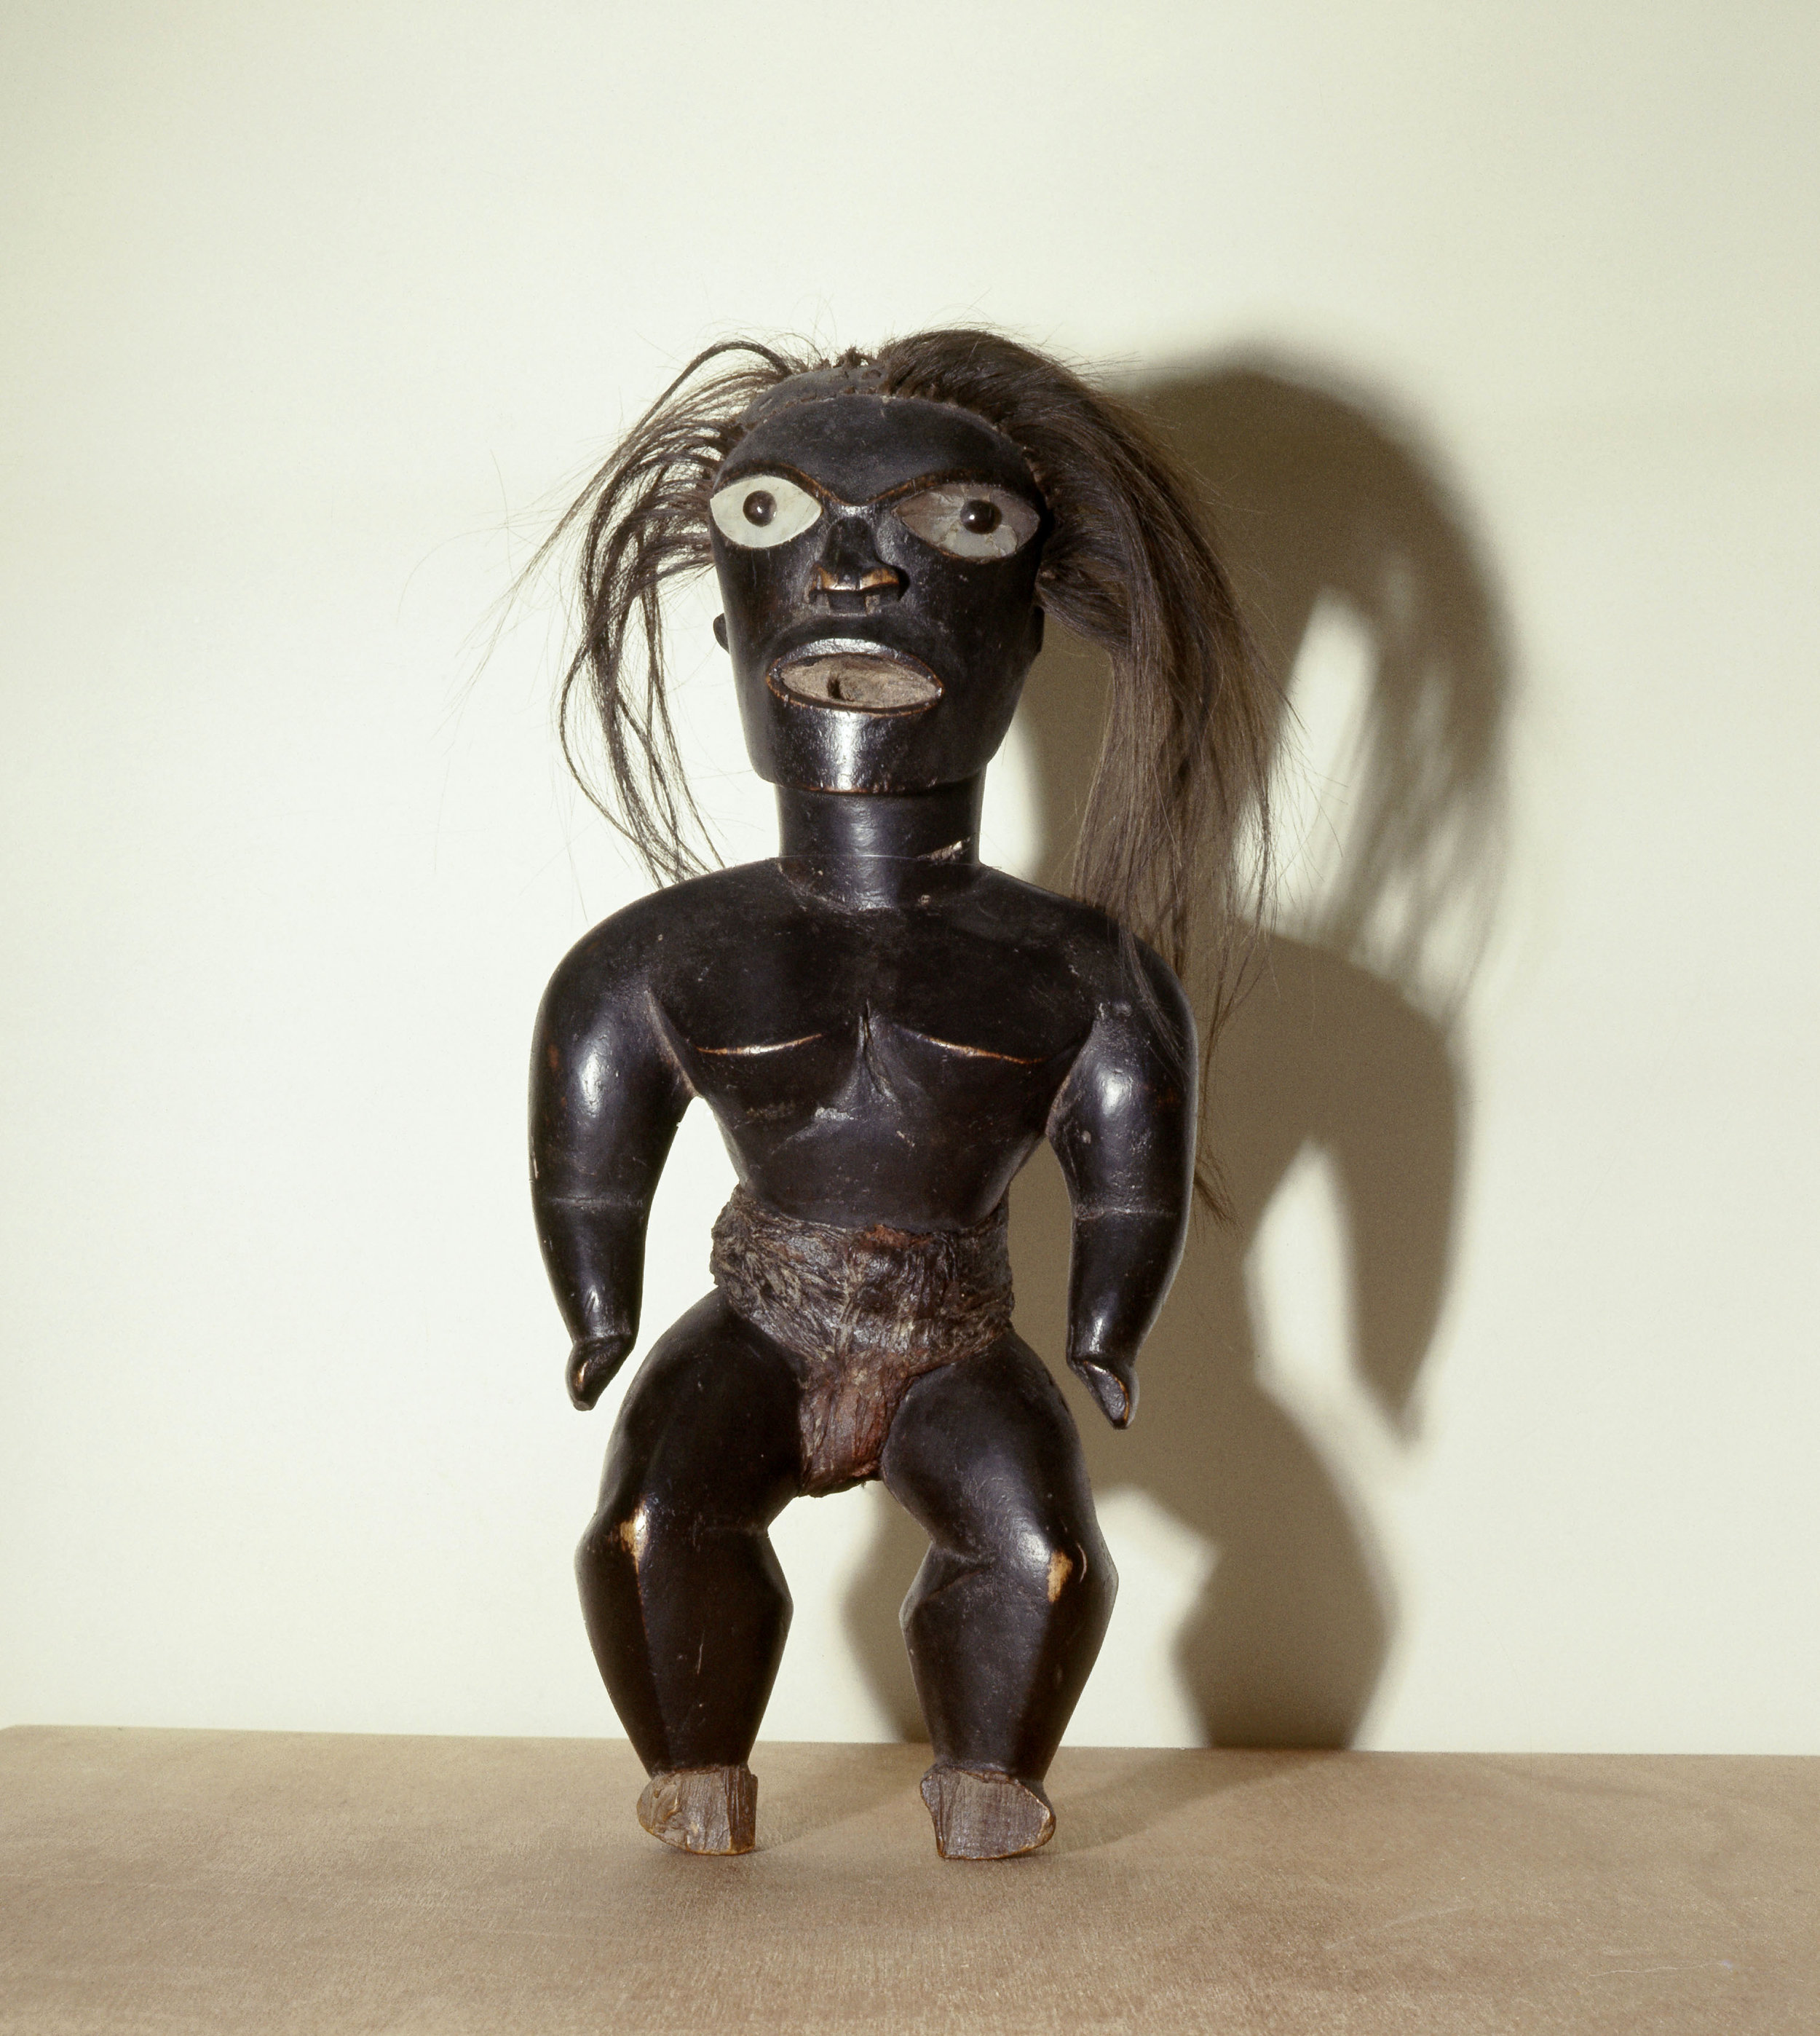 Statue of Pele, the Hawaiian fire goddess, a malign force who lives in the crater of Kilauea volcano. Country of Origin: Hawaii. Culture: Polynesia. Date/Period: 17th - 18th C. Material Size: Wood, hair. Credit Line: Werner Forman Archive / British Museum, London.